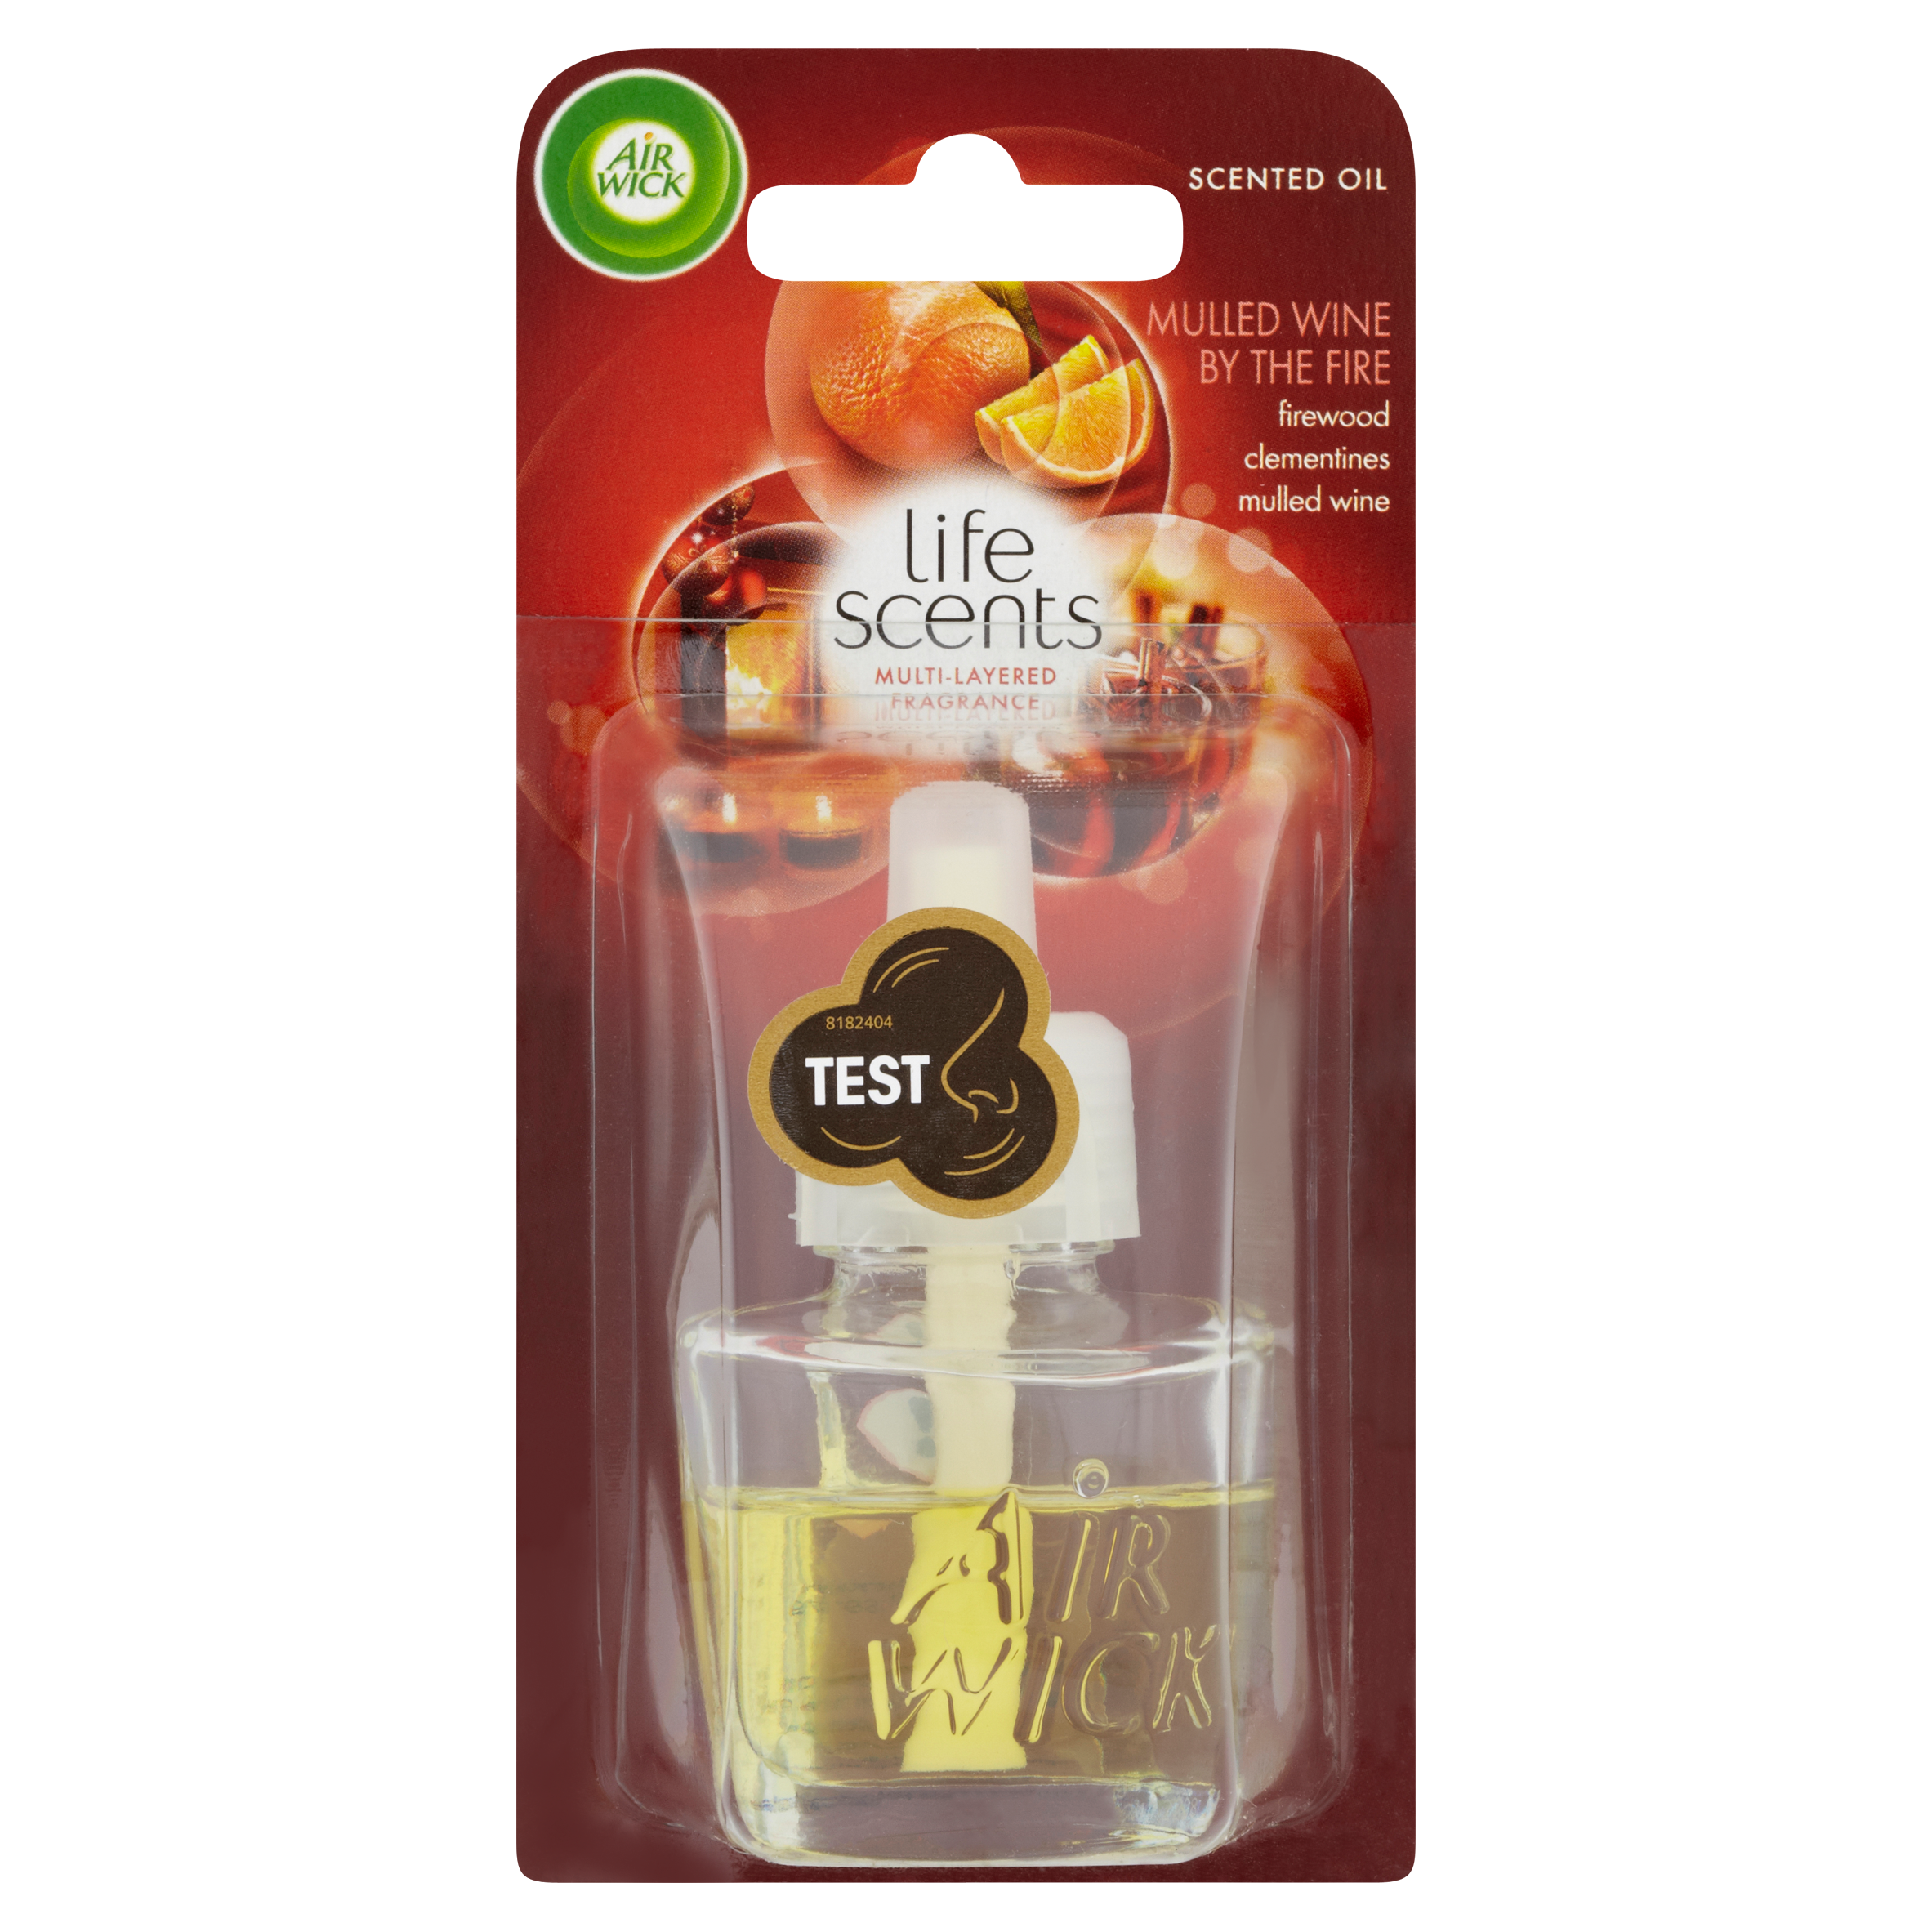 Air Wick Life Scents Mulled Wine by the Fire Plug-in